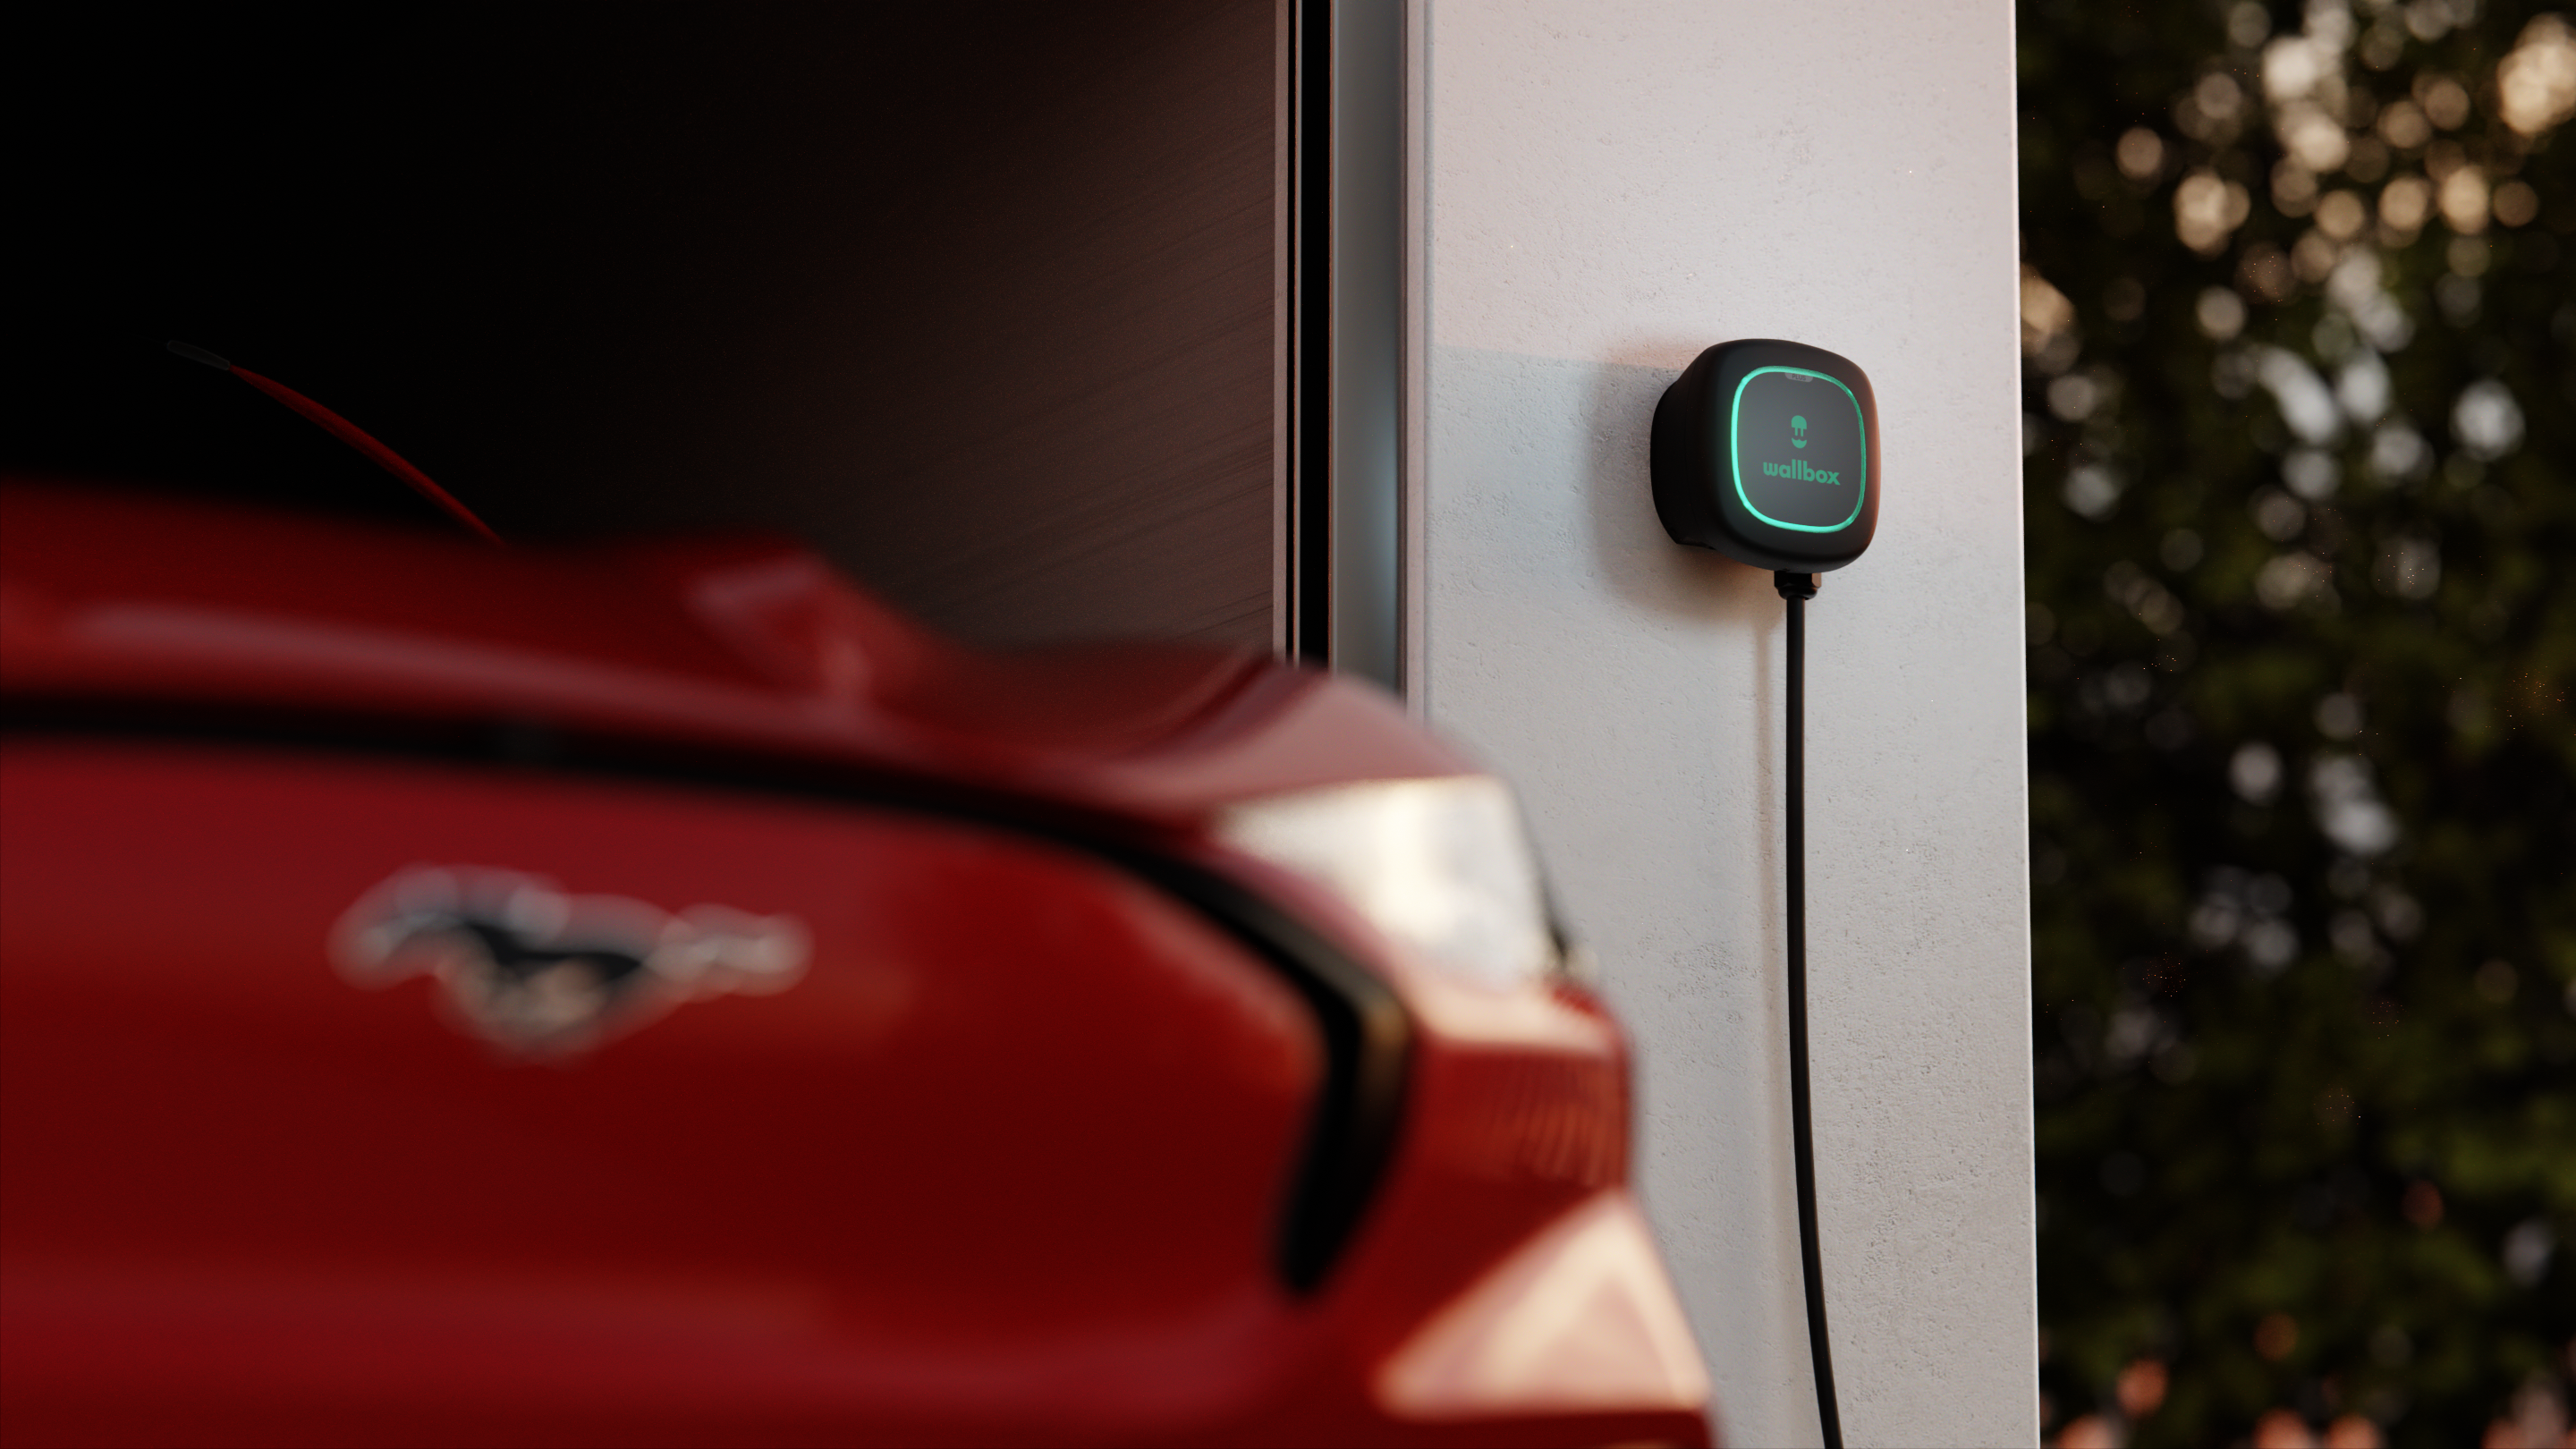 Wallbox introduces a 48Amp version of its best selling home charger to their North American product line